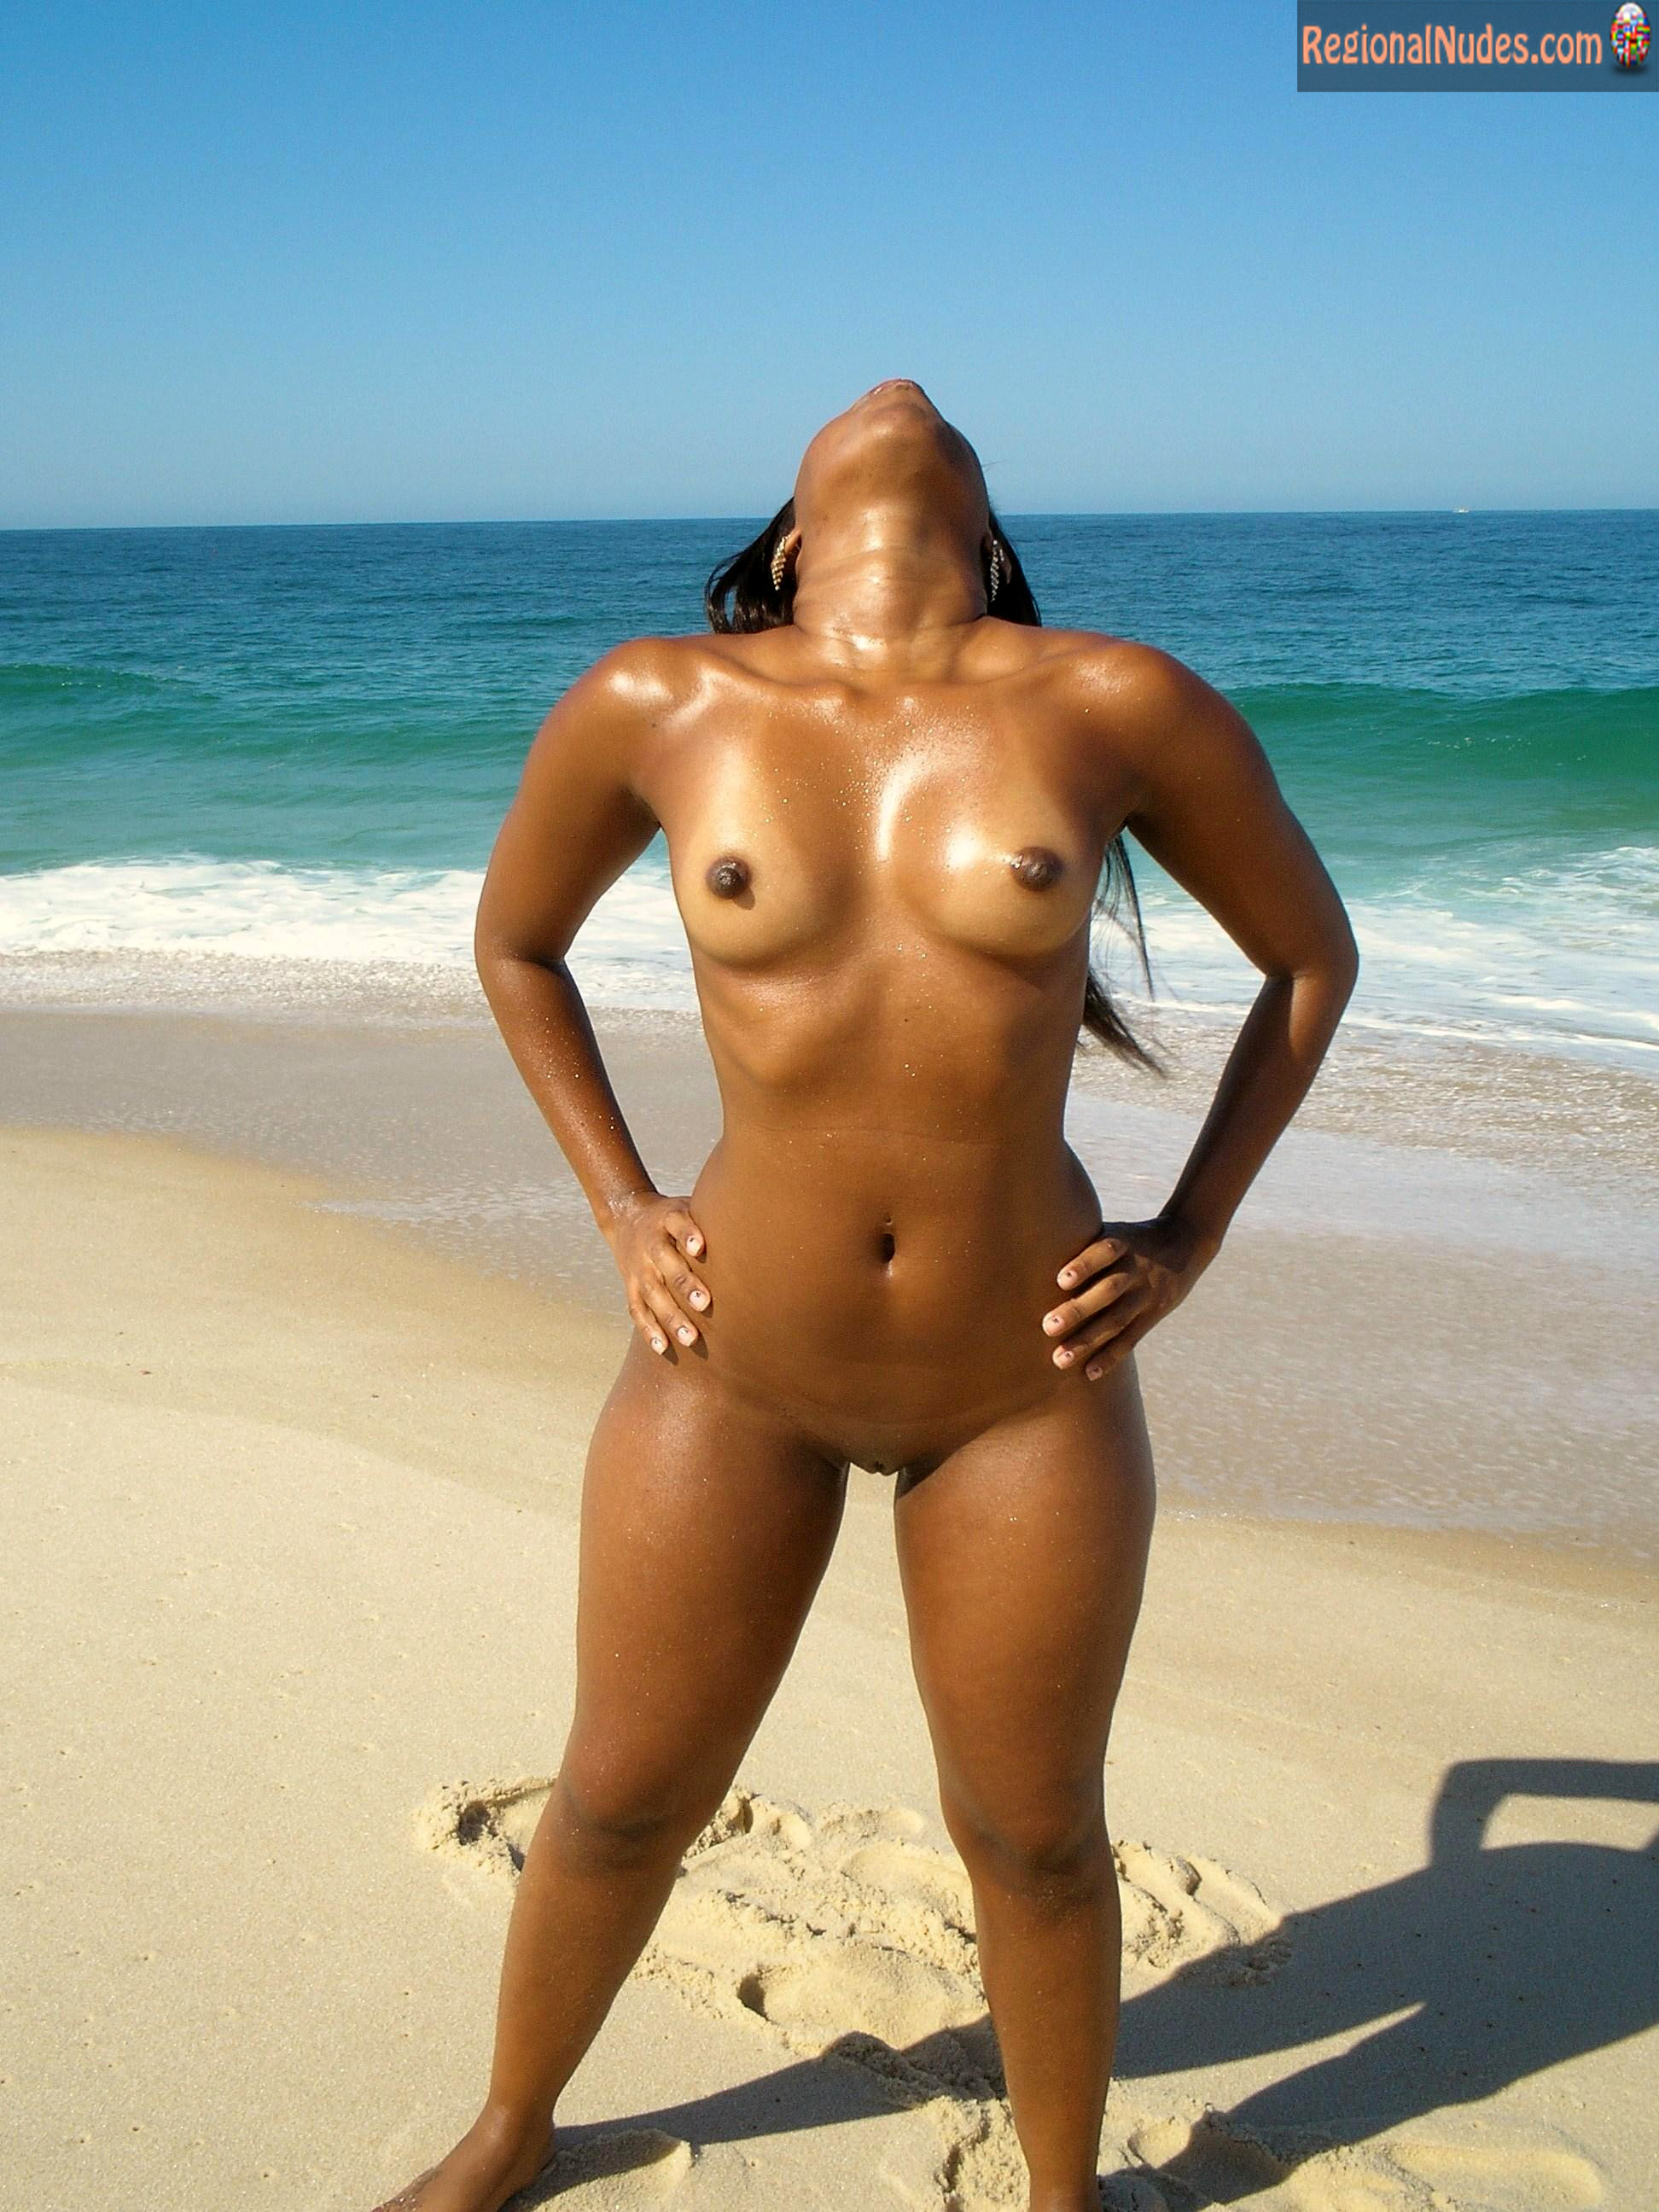 Not the brazil nude beach pussy simply remarkable